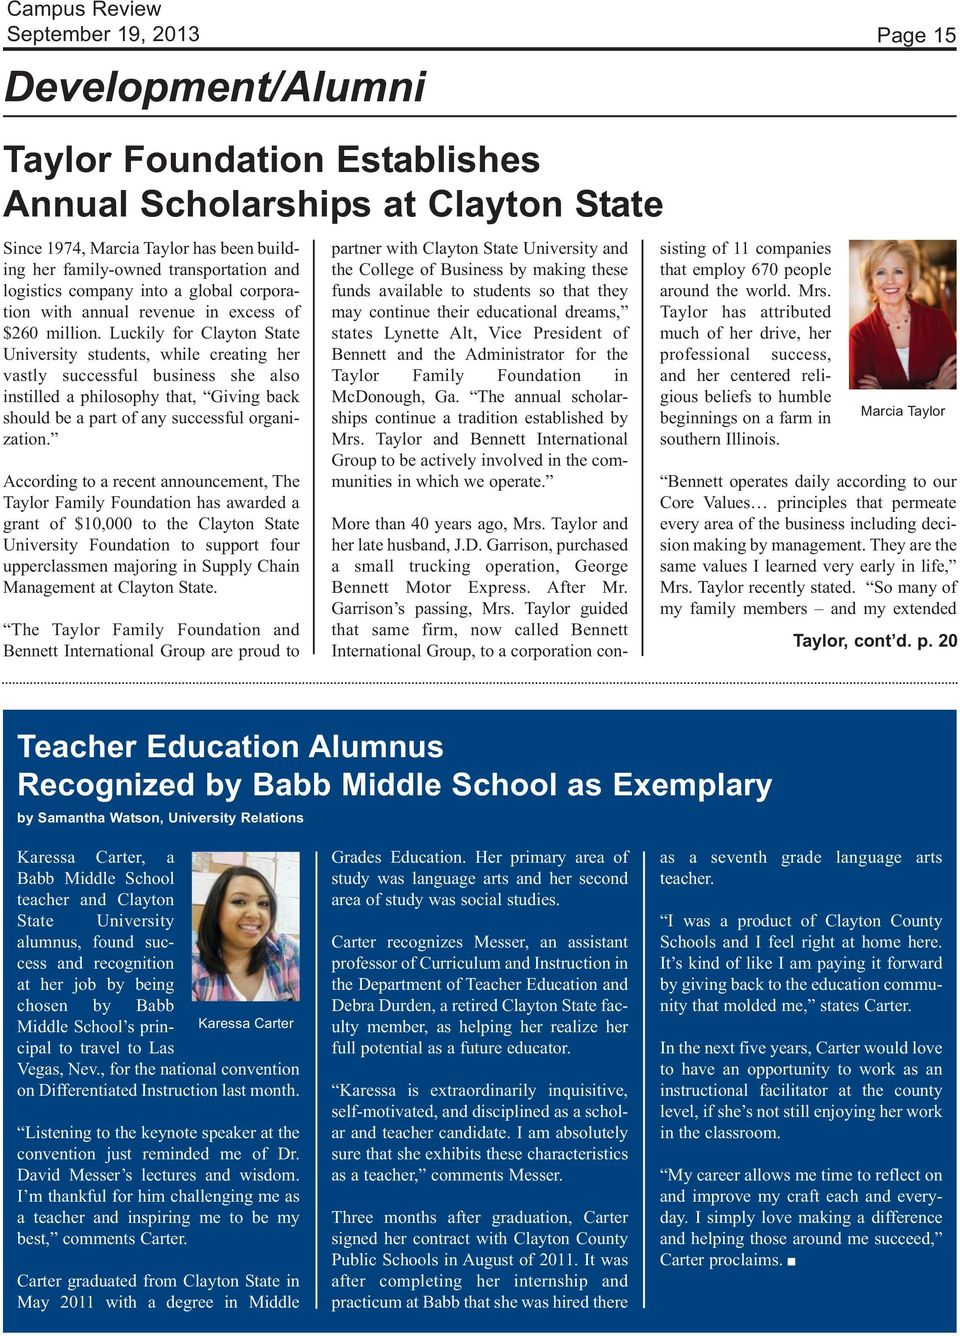 Luckily for Clayton State University students, while creating her vastly successful business she also instilled a philosophy that, Giving back should be a part of any successful organization.